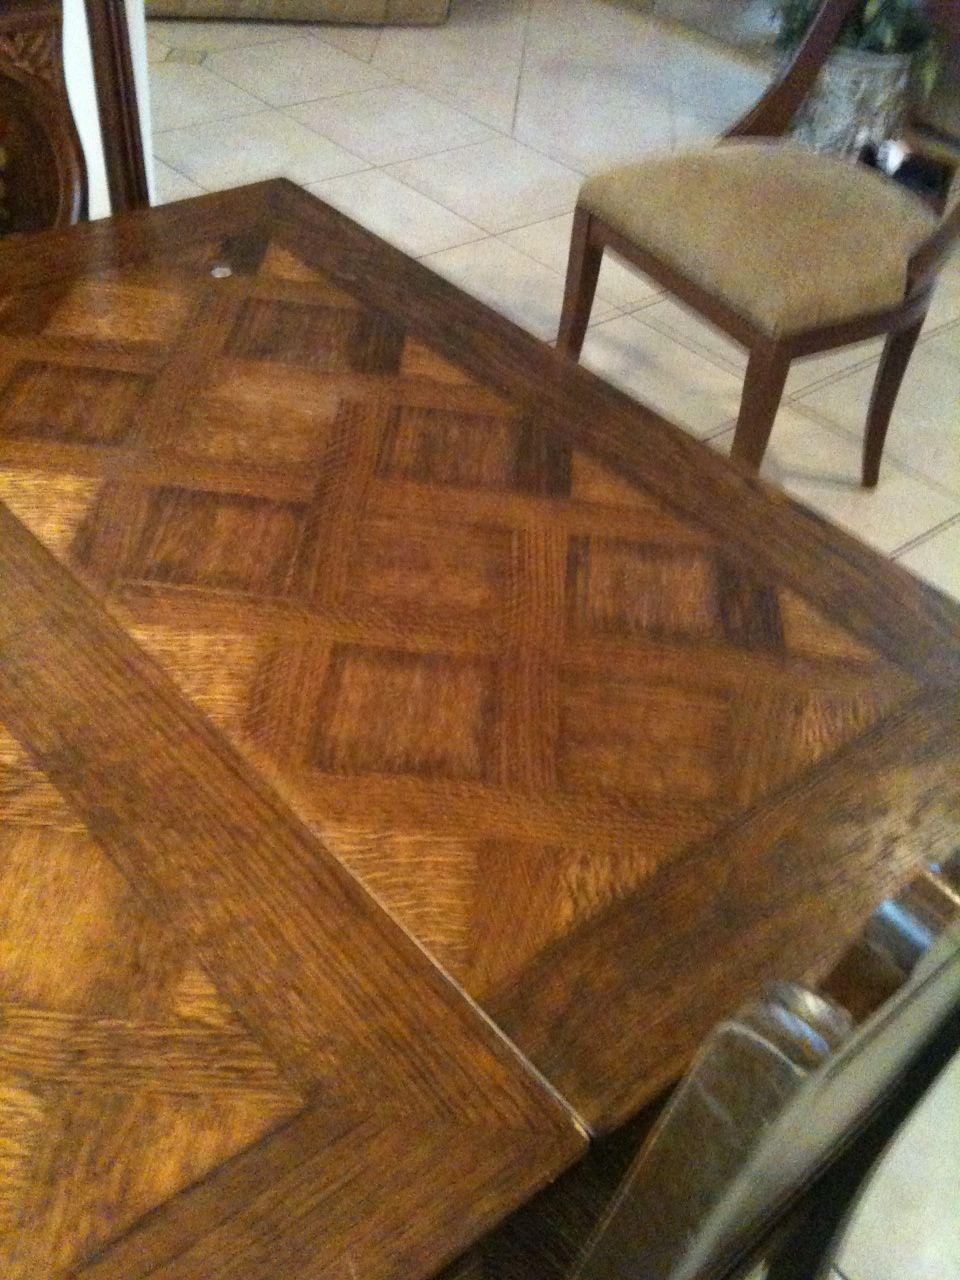 Antique Dining Room Table With Pull Out Leaves In 2020 Antique Dining Room Table Antique Dining Rooms Oak Dining Room Set